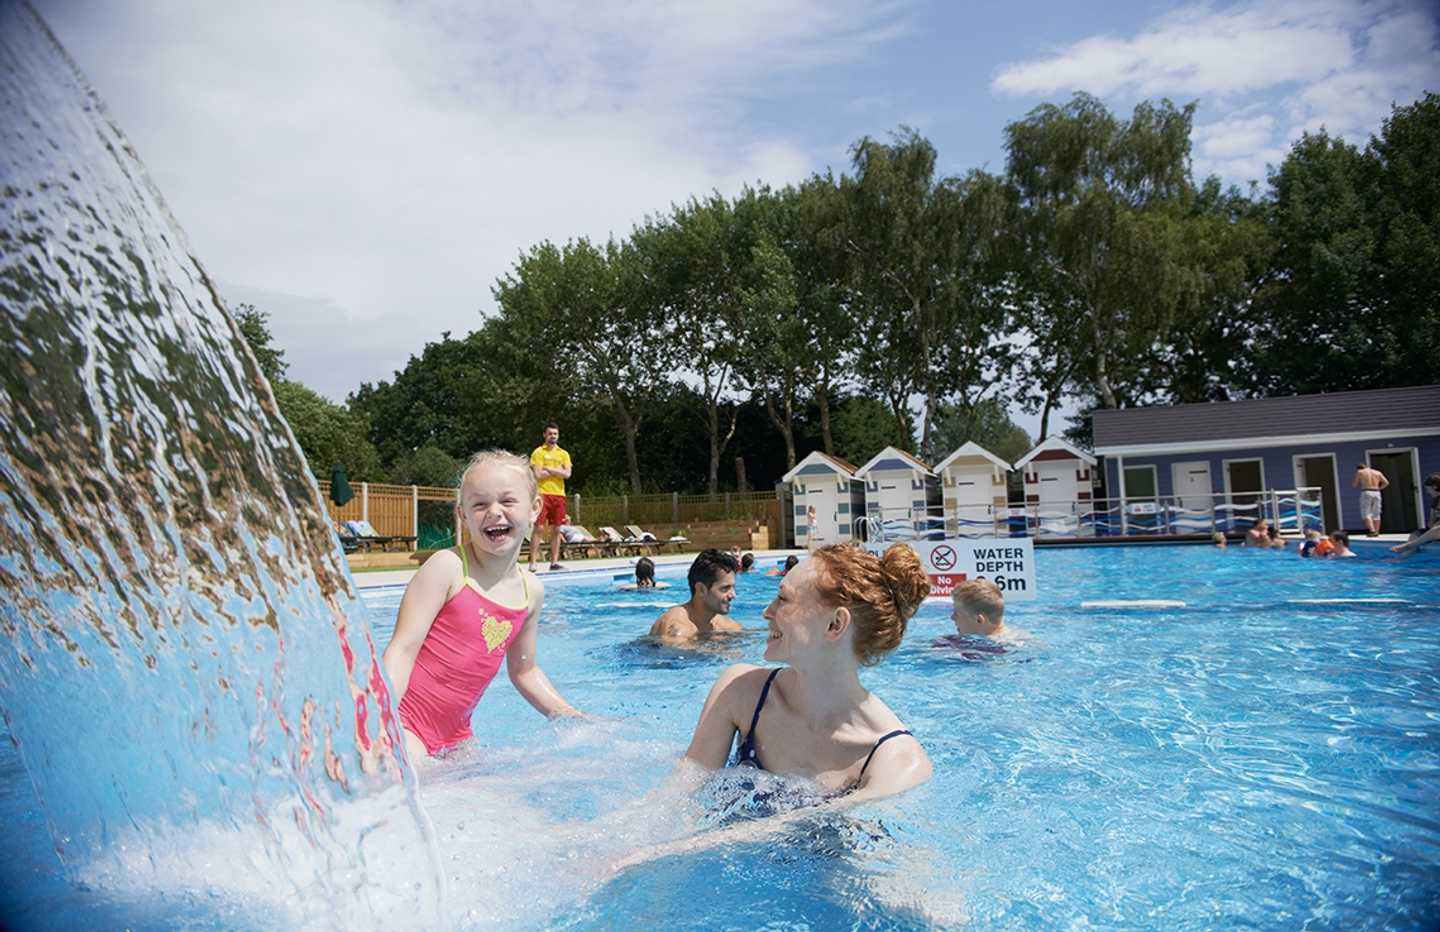 Family having fun in outdoor pool water feature